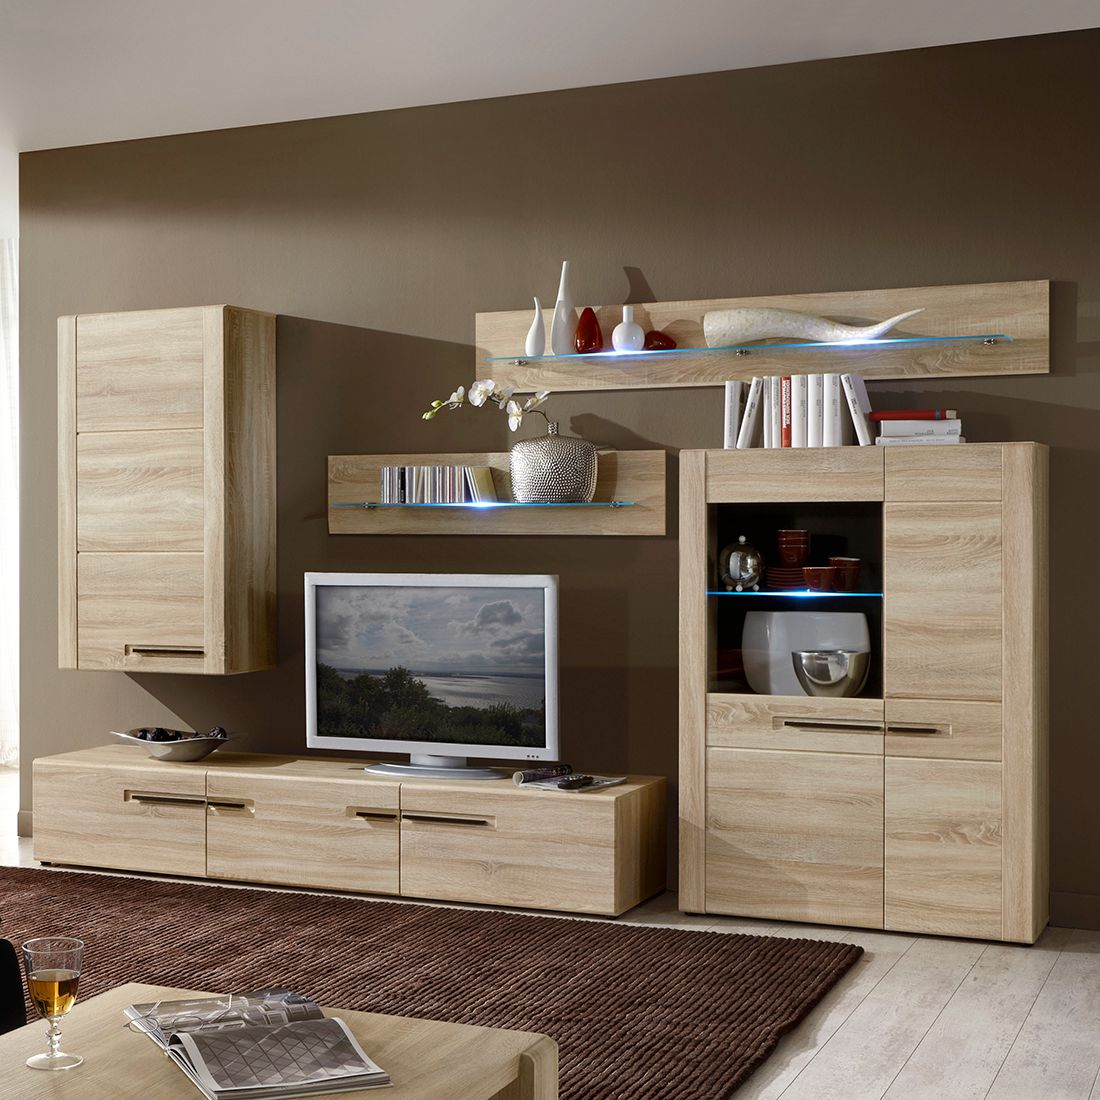 perfect resserre legumes gifi with resserre legumes gifi. Black Bedroom Furniture Sets. Home Design Ideas